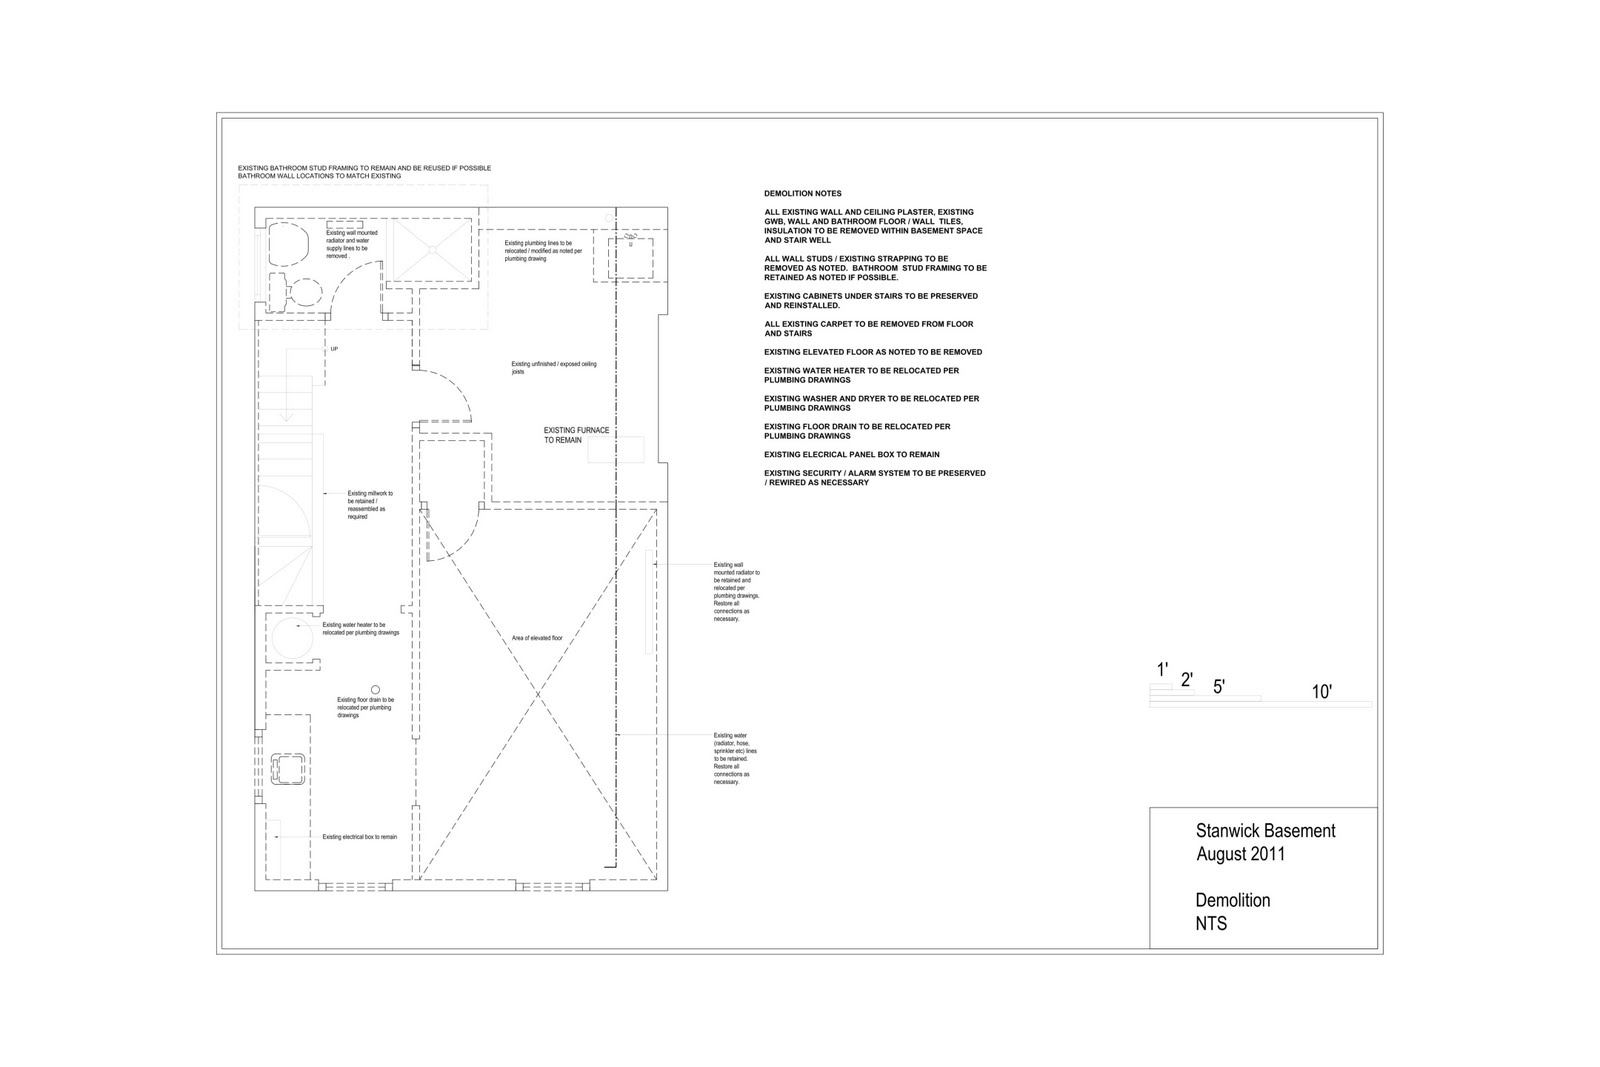 medium resolution of  the architectural plan the engineering plan the flooring plan the electrical plan and the walls trims finishes plan click on the pics above to see